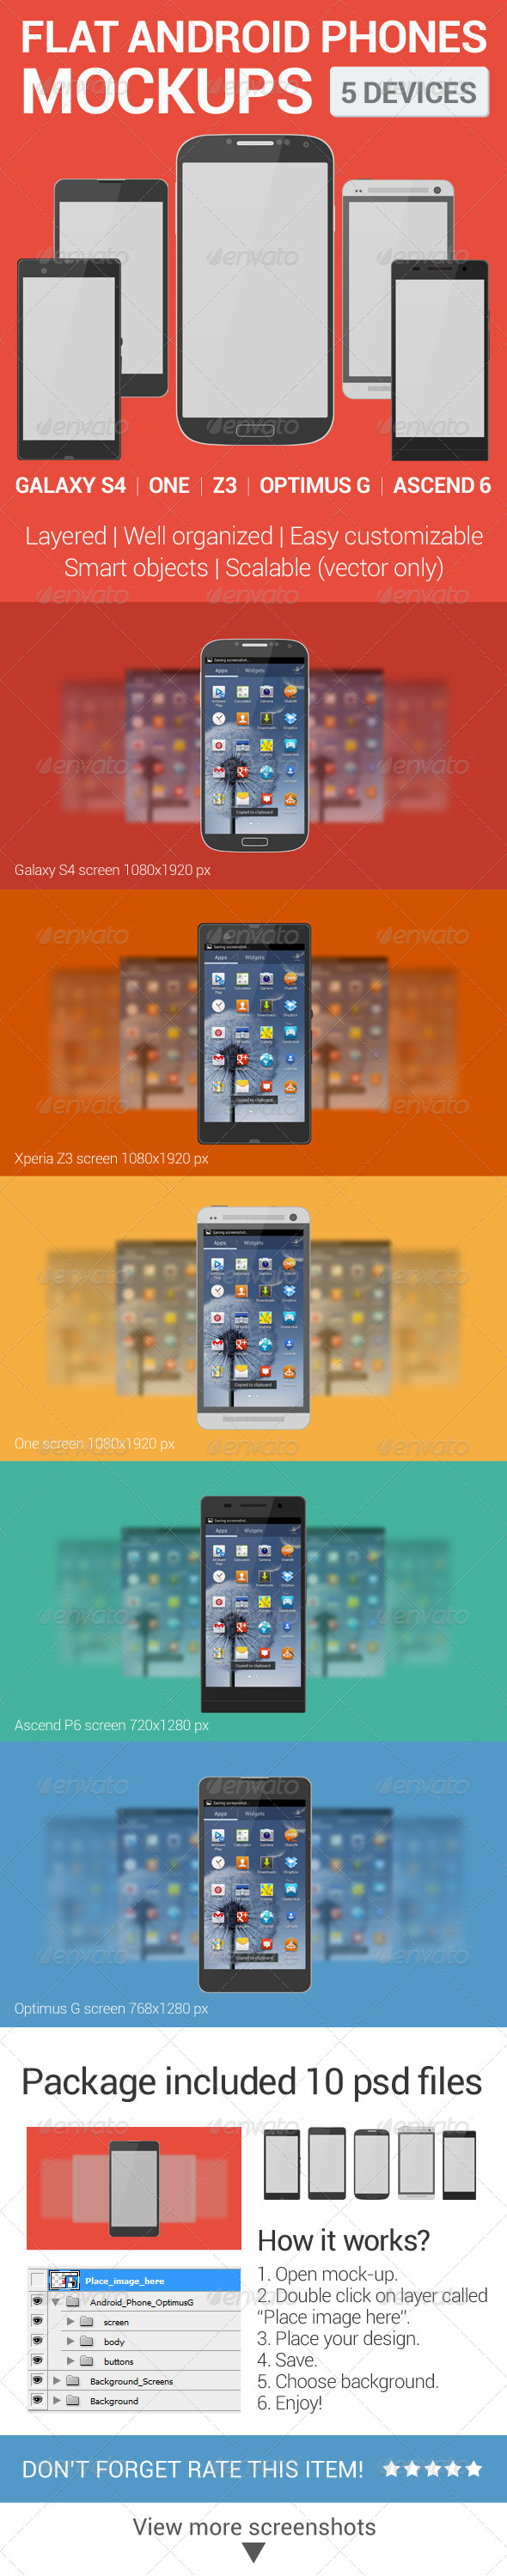 GraphicRiver Android Phones Flat Mockups 5101276